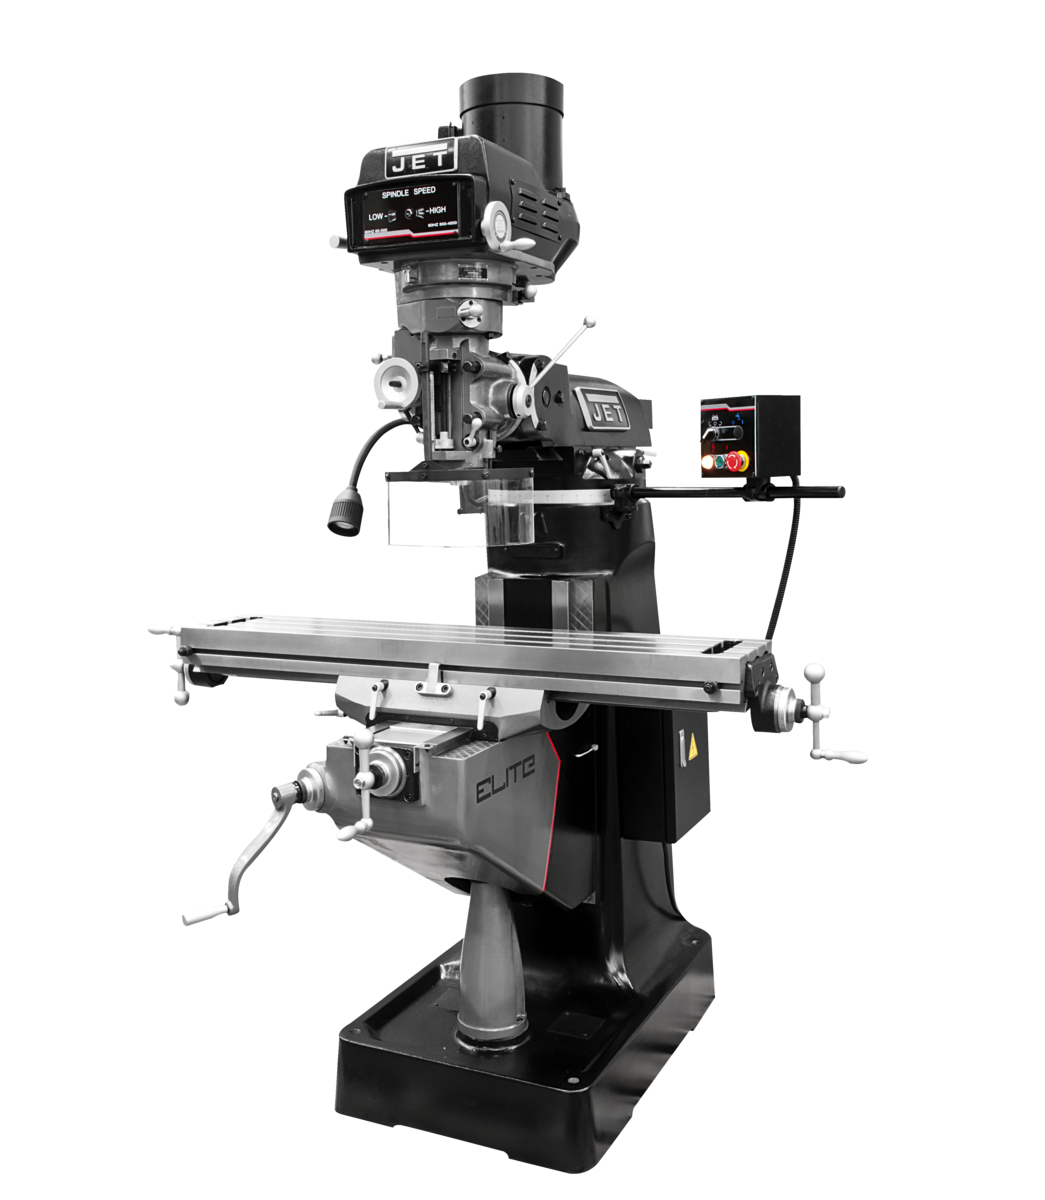 ETM-949 Mill with 2-Axis ACU-RITE 203 DRO and X, Y-Axis JET Powerfeeds